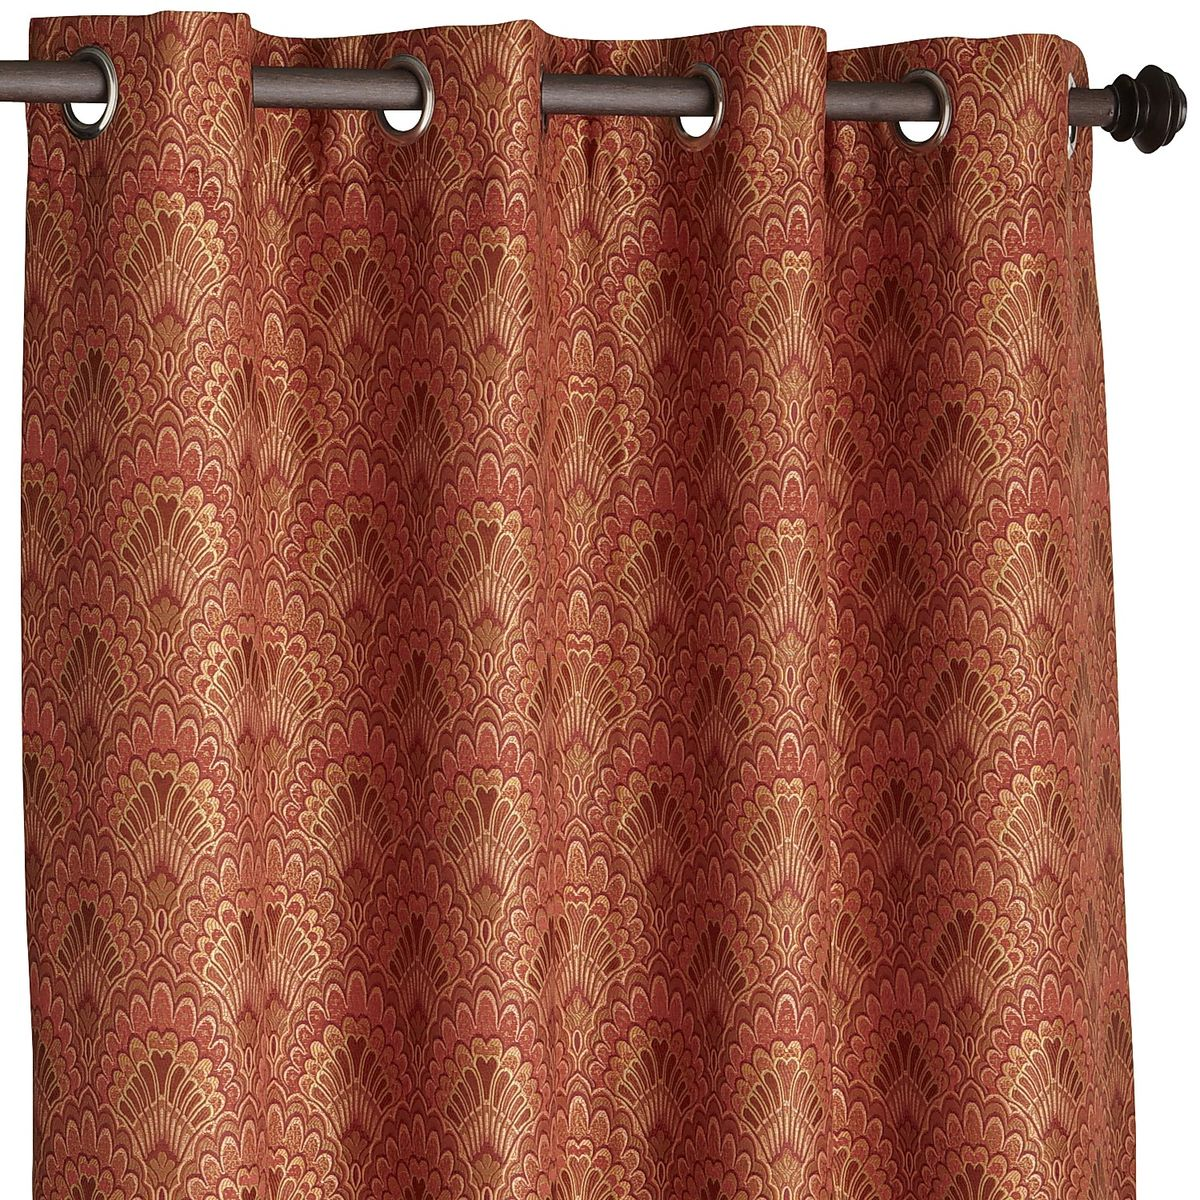 extra brown and red shower curtain. Add Fall decor for extra color and texture to complete the look  What Color Should I Paint My Closet A Specialist in Charlotte